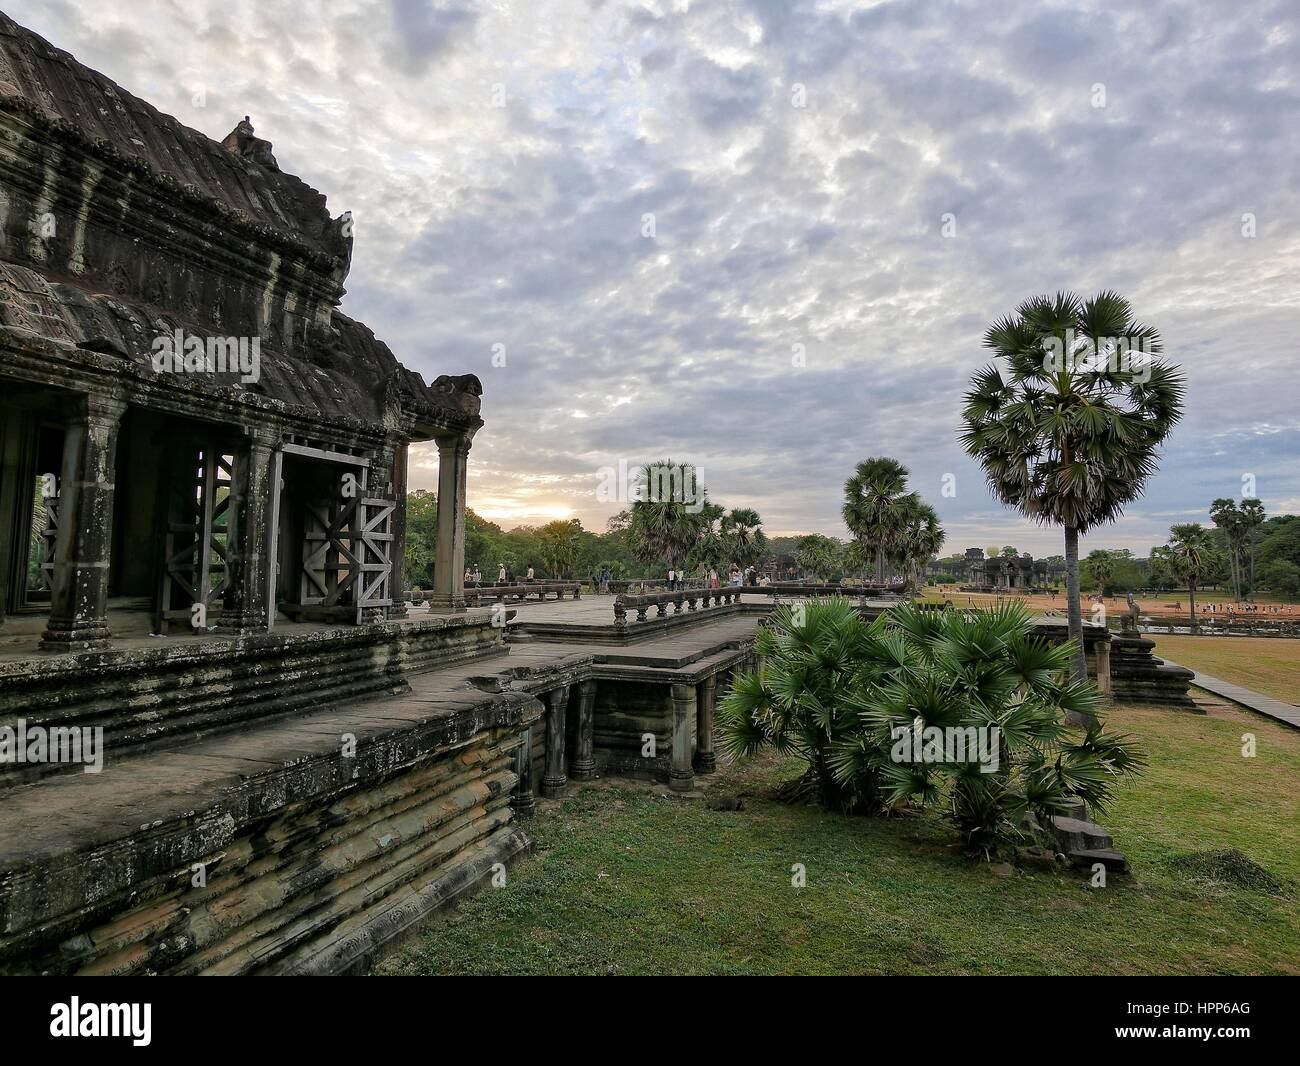 Patio inner courtyard view to the sunset at angkor wat - Stock Image